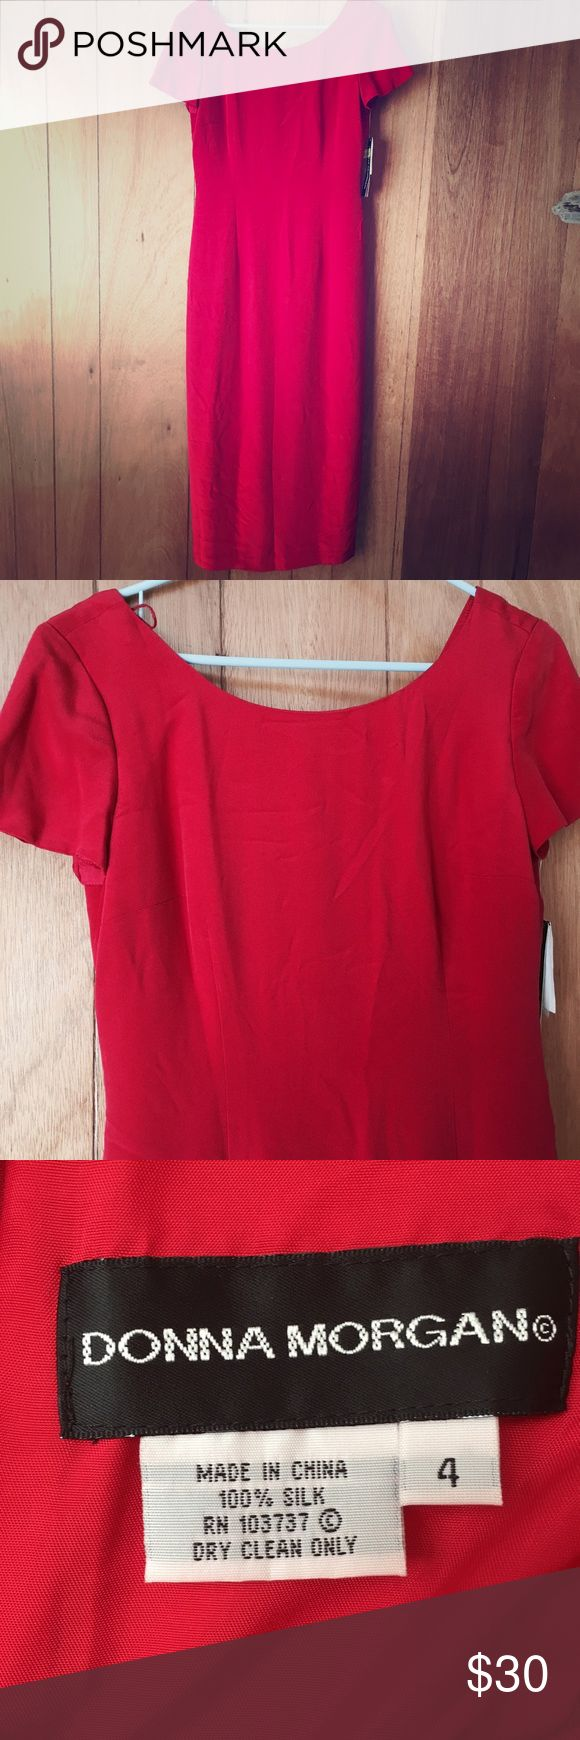 "100% Silk Donna Morgan Midi Occasion Dress Donna Morgan 100% silk dress. Red/pink/strawberry color. Midi Length. Sleek sheath silhouette. Short sleeves. I can't model, not my size. Inside is lined. Back zipper. Button detail. 16"" back slit. Dry clean only. A great dress for a Maid of Honor, or bridesmaid. There are some wrinkles from storage, but it would just need a steam. Could also be easily fitted. Top 3 pictures show the dress true to color. Make an offer! Shoulder to hem 49"", waist 15""…"